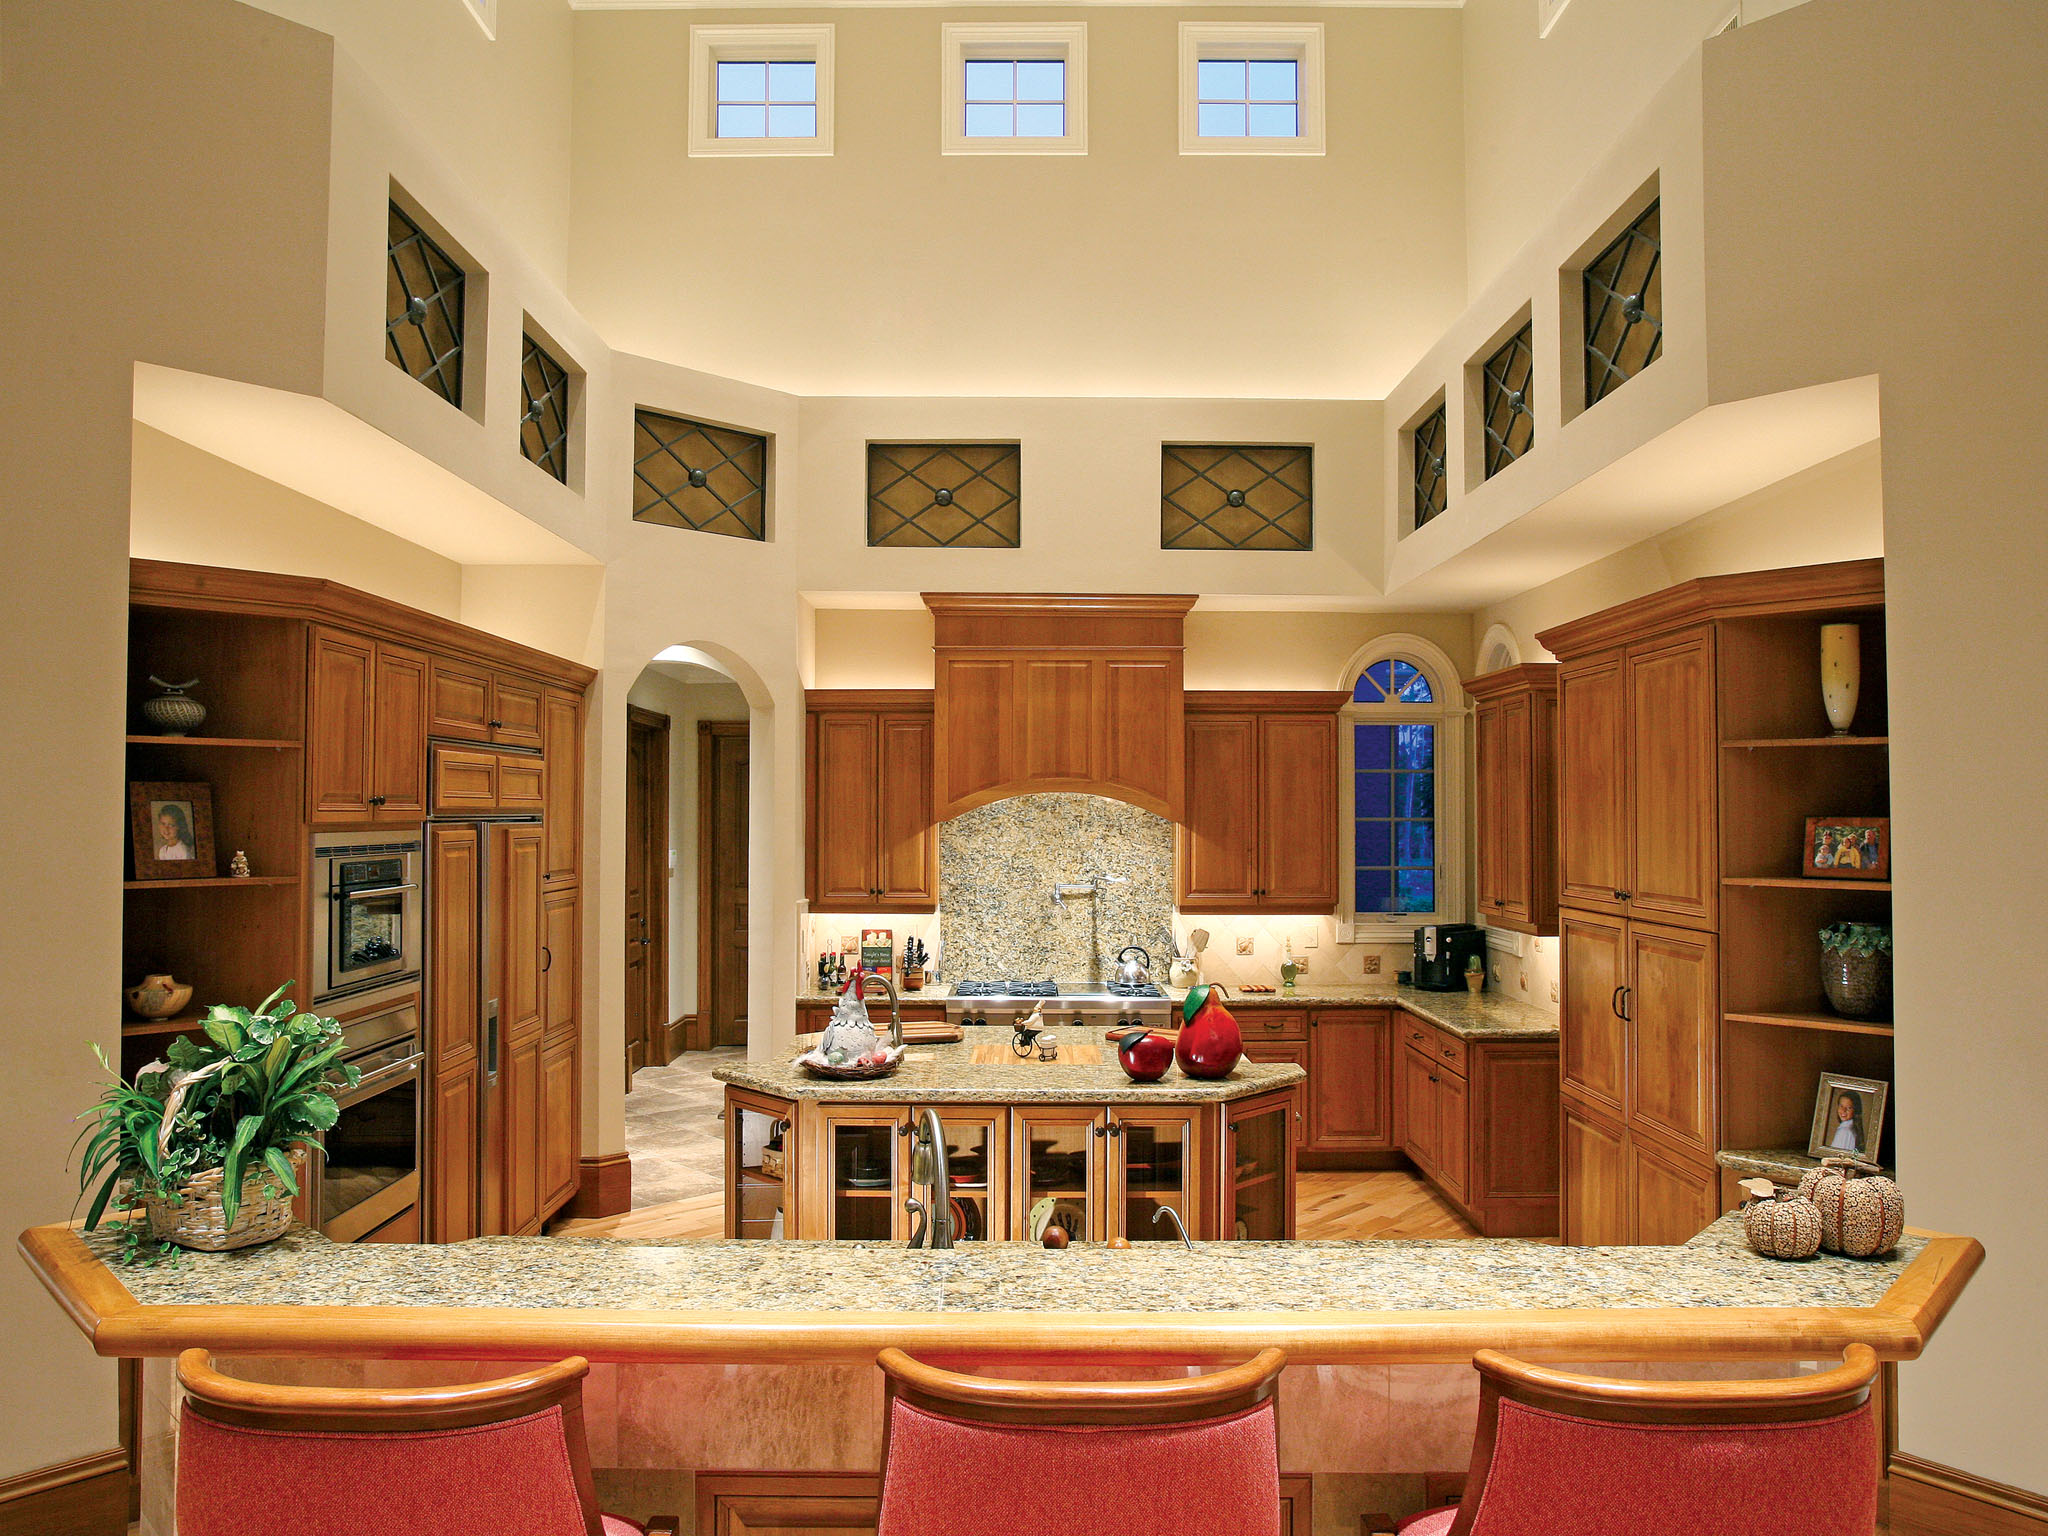 Mediterranean frankfort kitchen remodel halo for Home kitchen remodeling